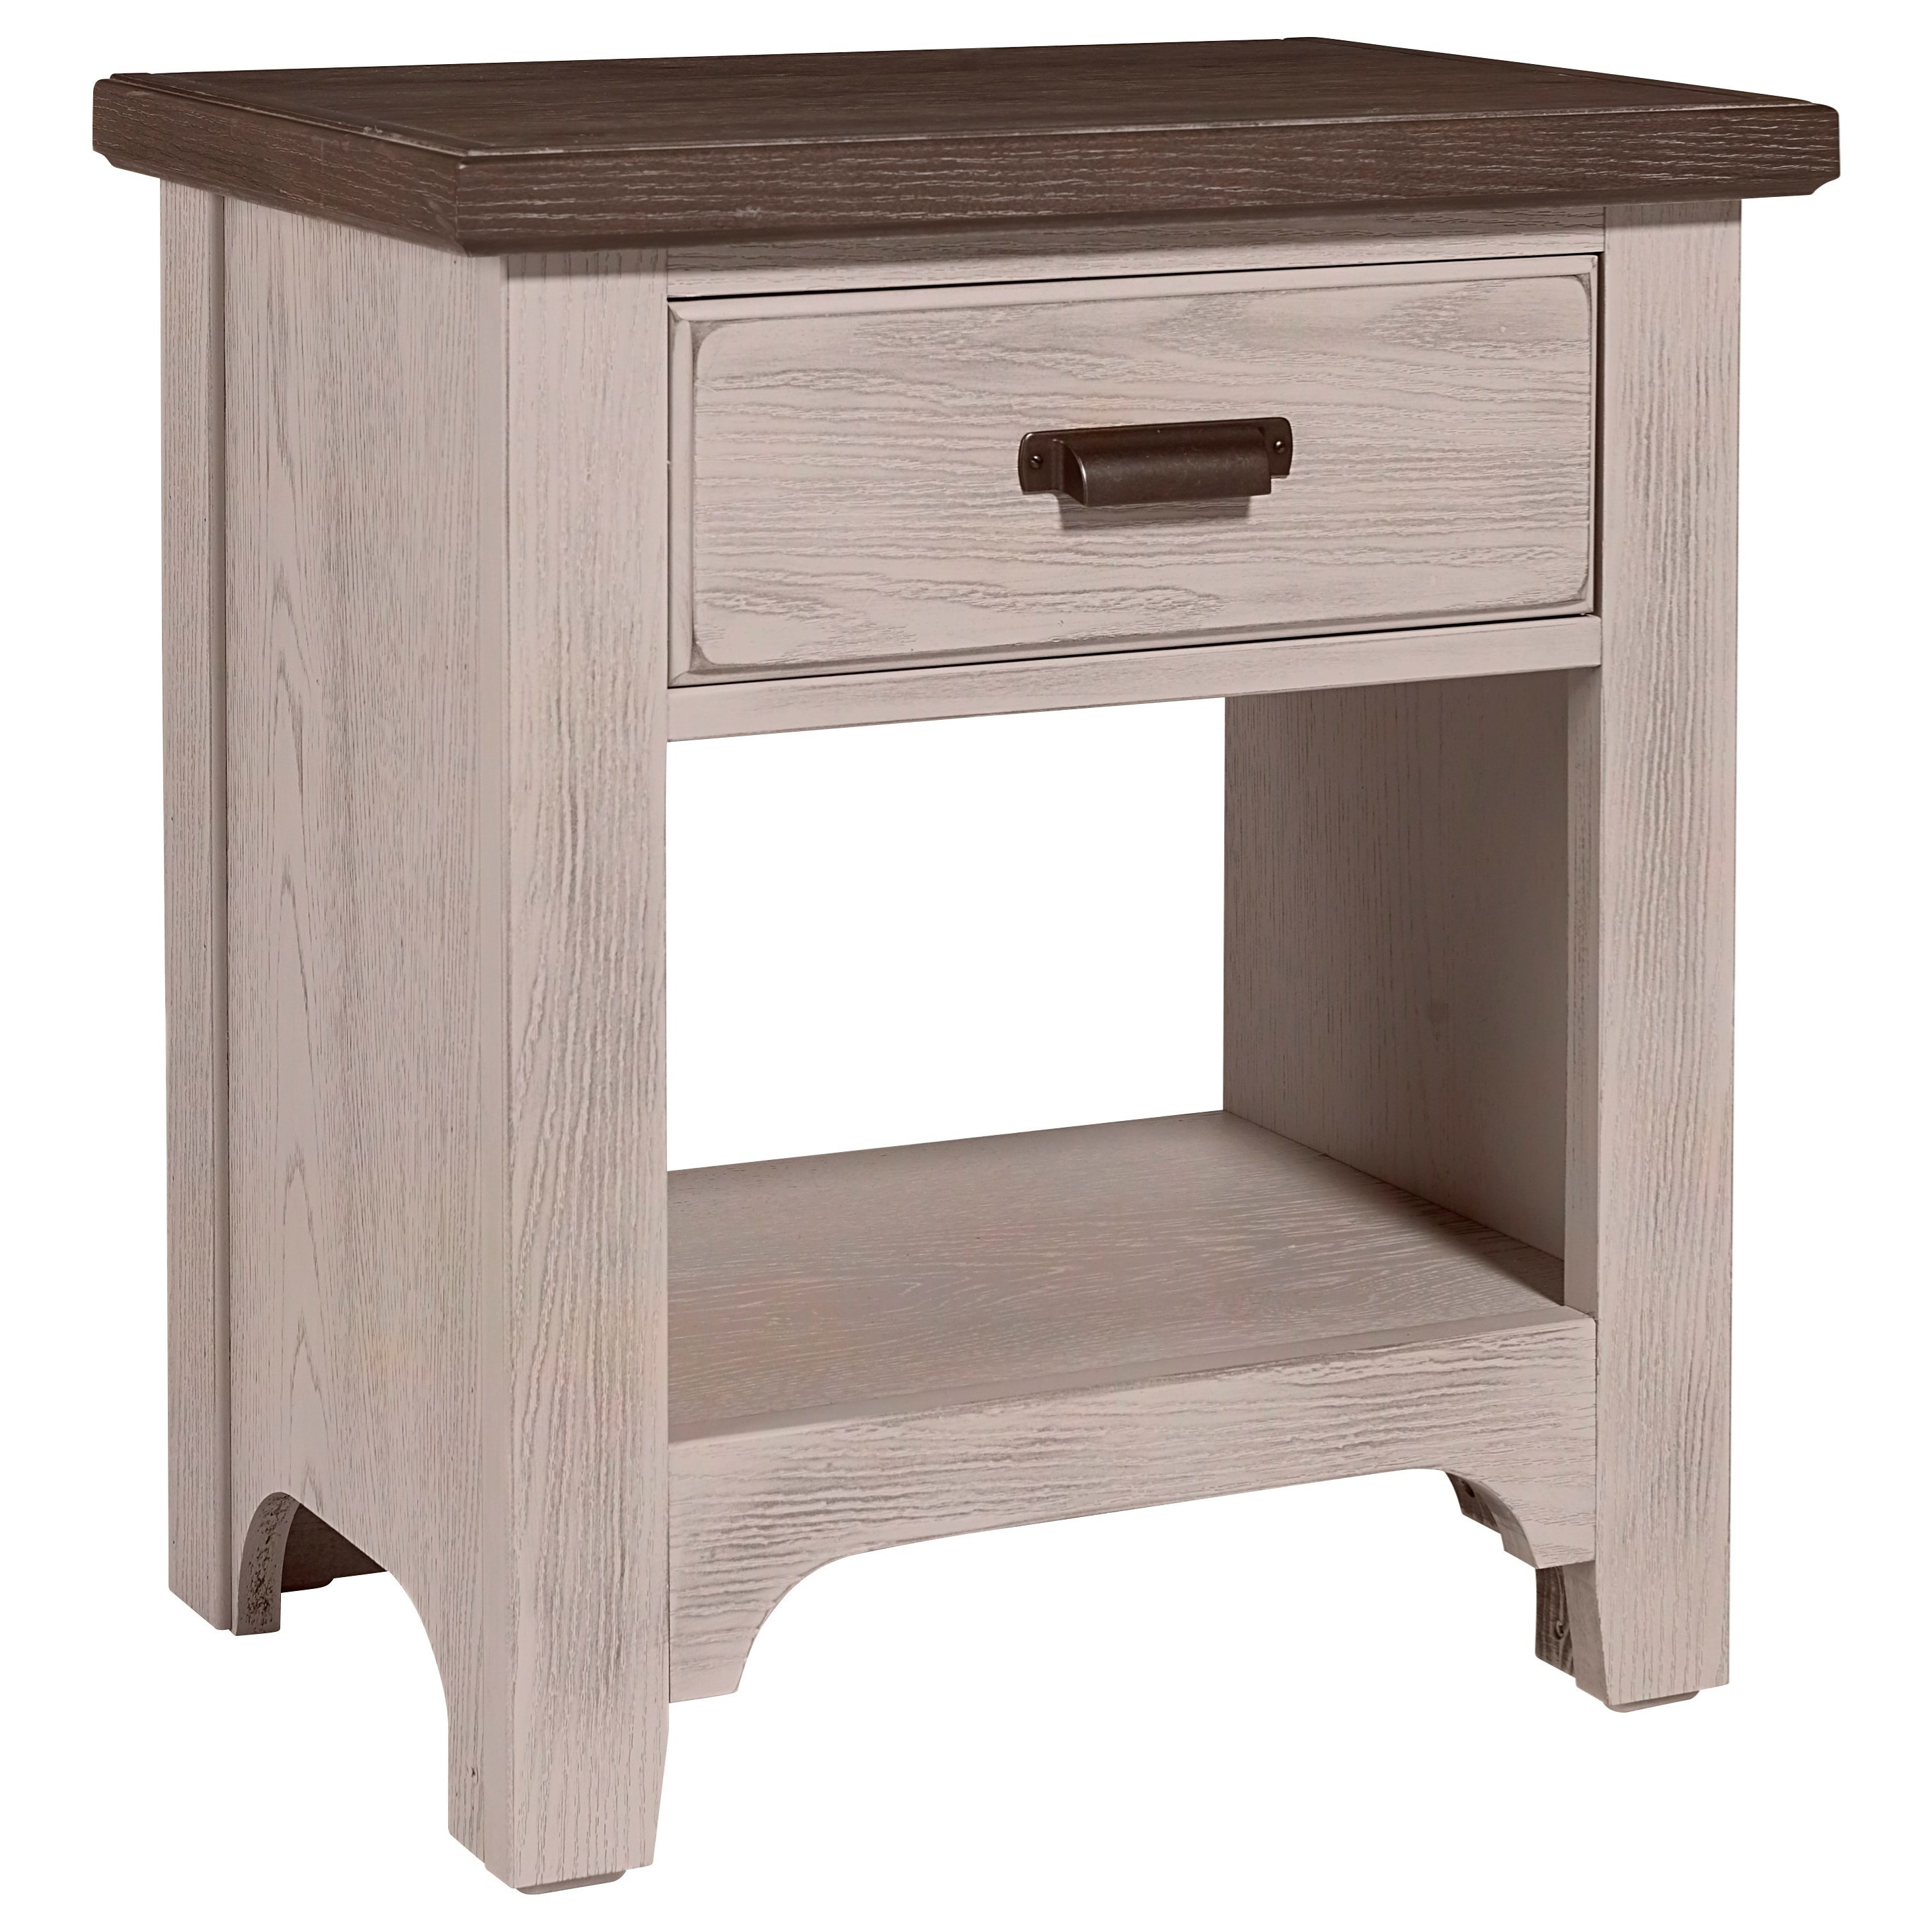 Bungalow Nightstand by Laurel Mercantile Co. at Darvin Furniture